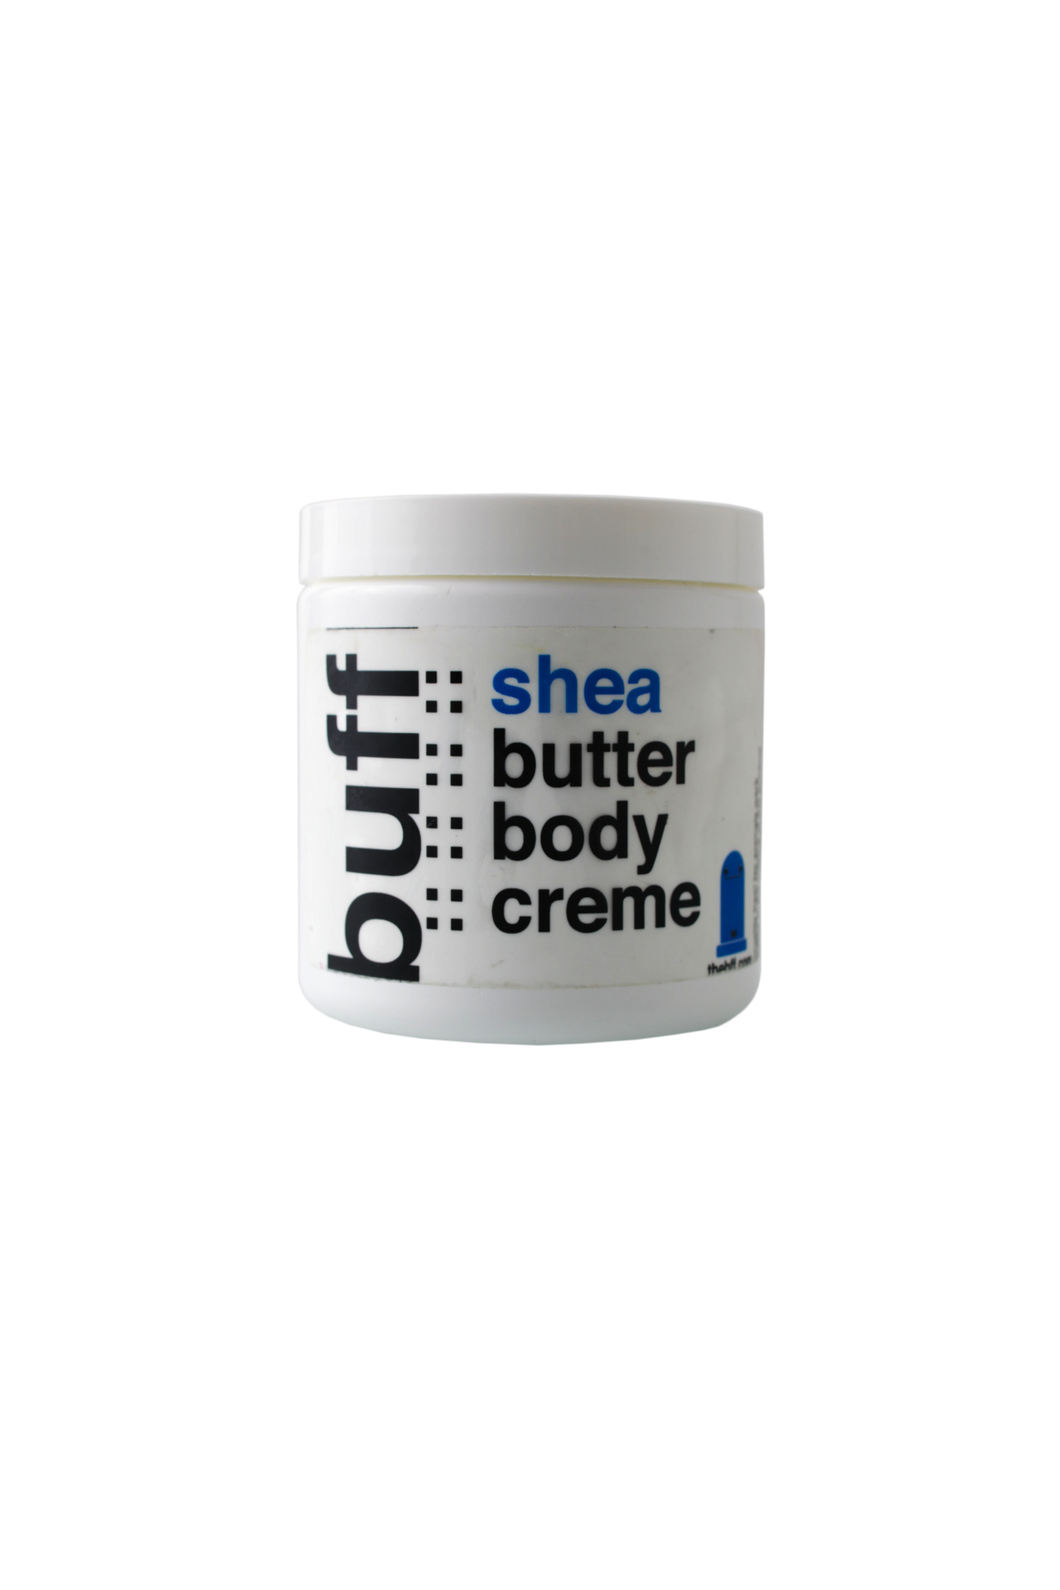 BUFF Shea Butter Body Creme 8oz